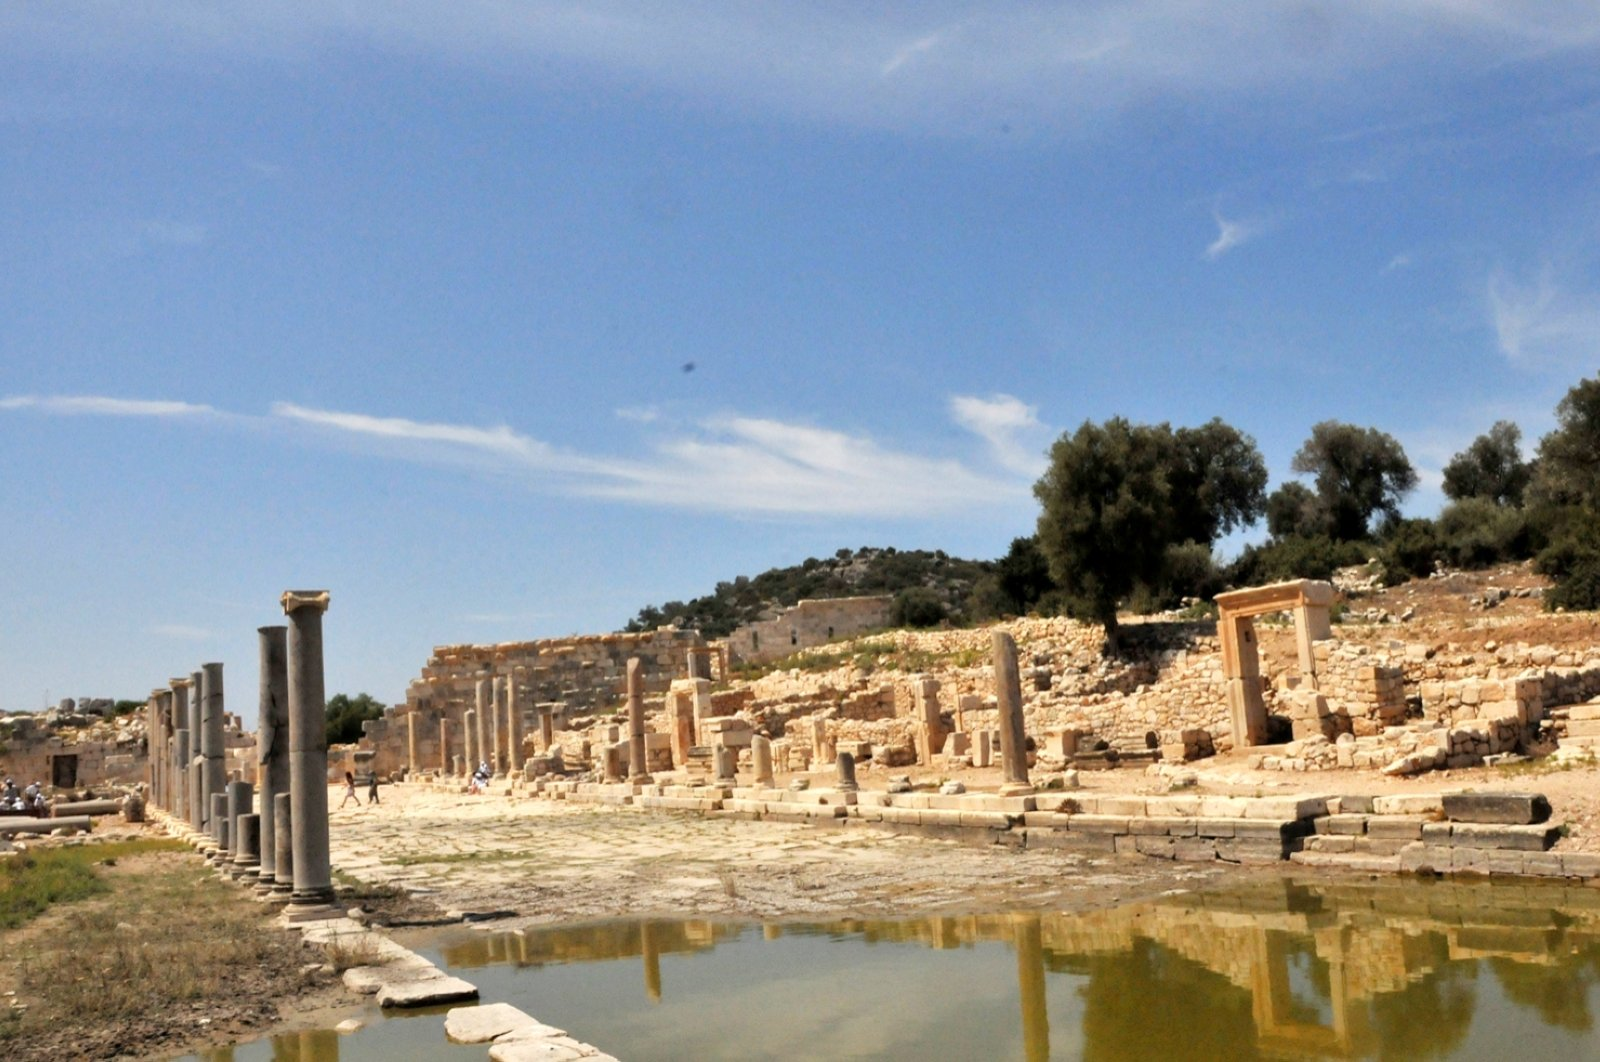 A photo from the ancient city of Patara, Antalya, southern Turkey, Aug. 13, 2020. (DHA PHOTO)